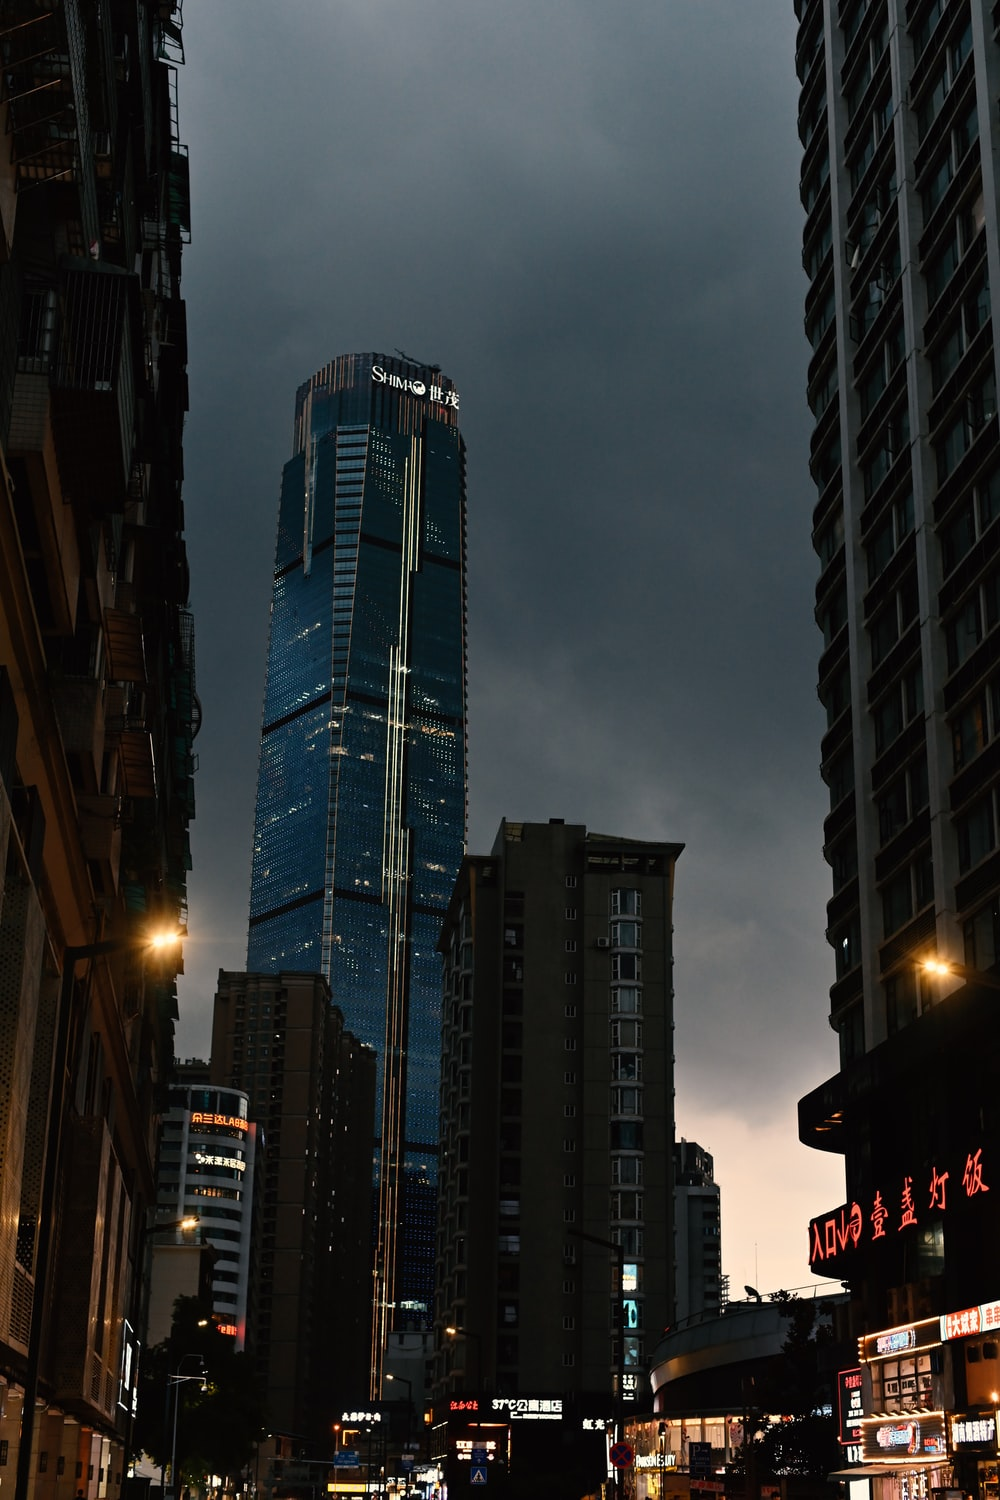 low angle photography of high rise buildings during night time